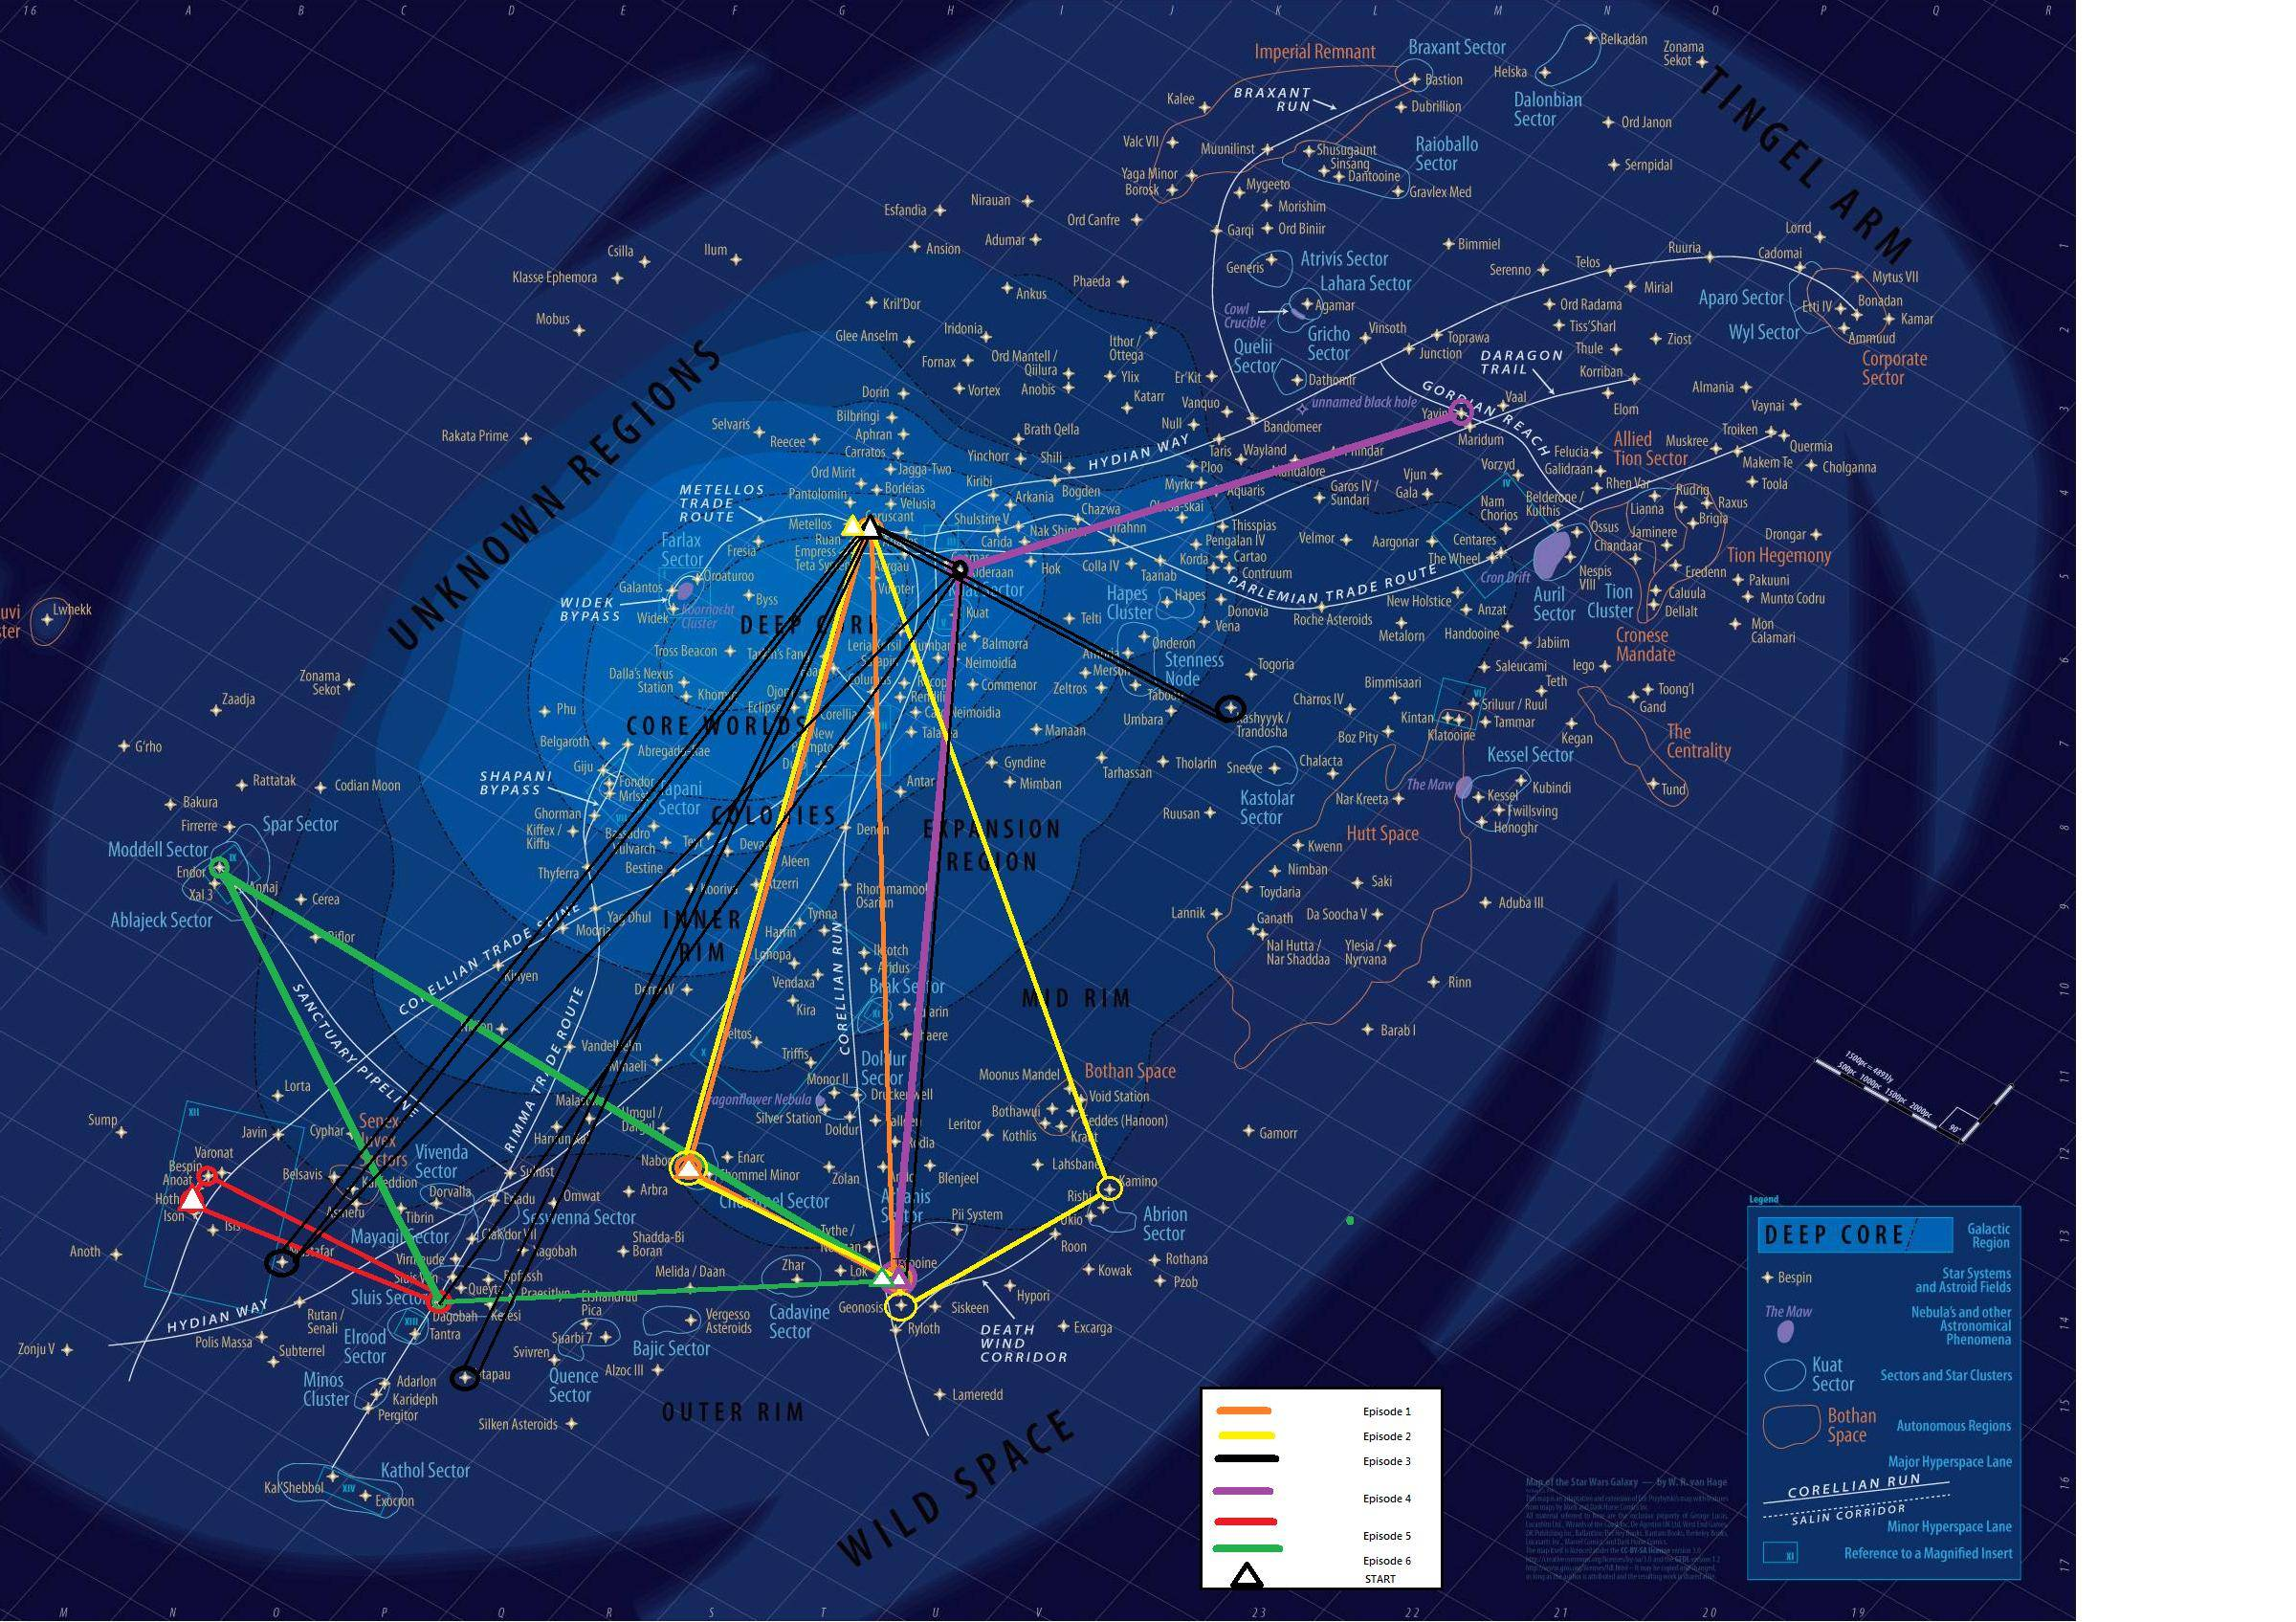 Star Wars Karte.An Epic Unbelievably Detailed Map Of The Star Wars Galaxy